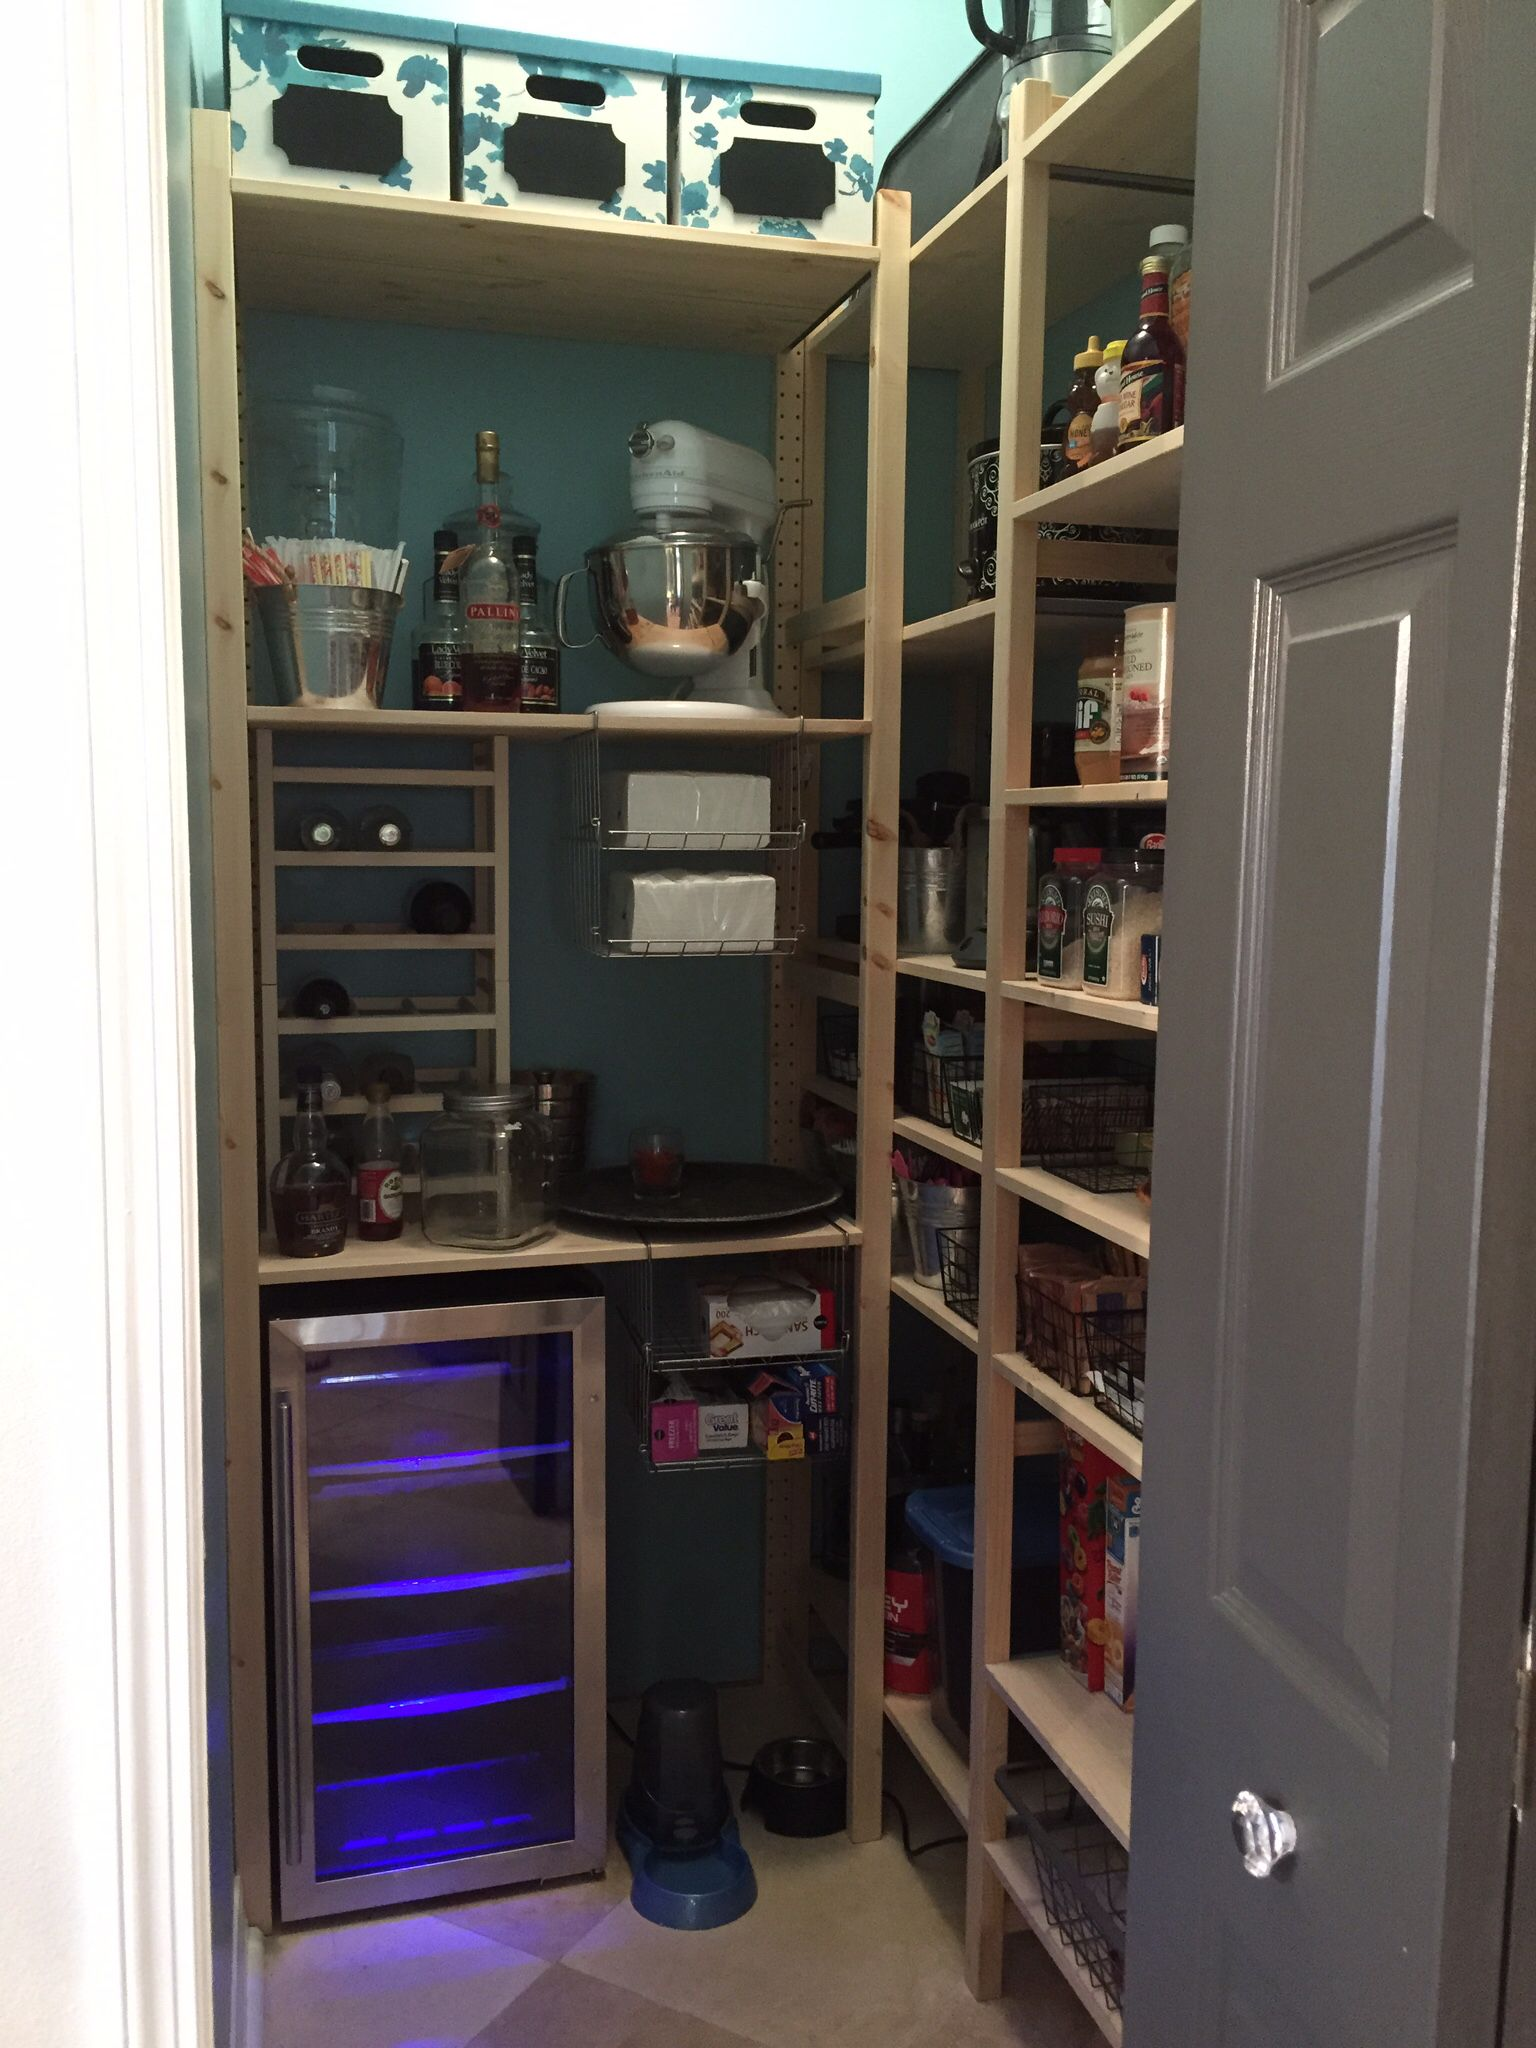 Ikea Pantry Küchen Remodel You Pantry With Ikea S Ivar Shelving Boulder